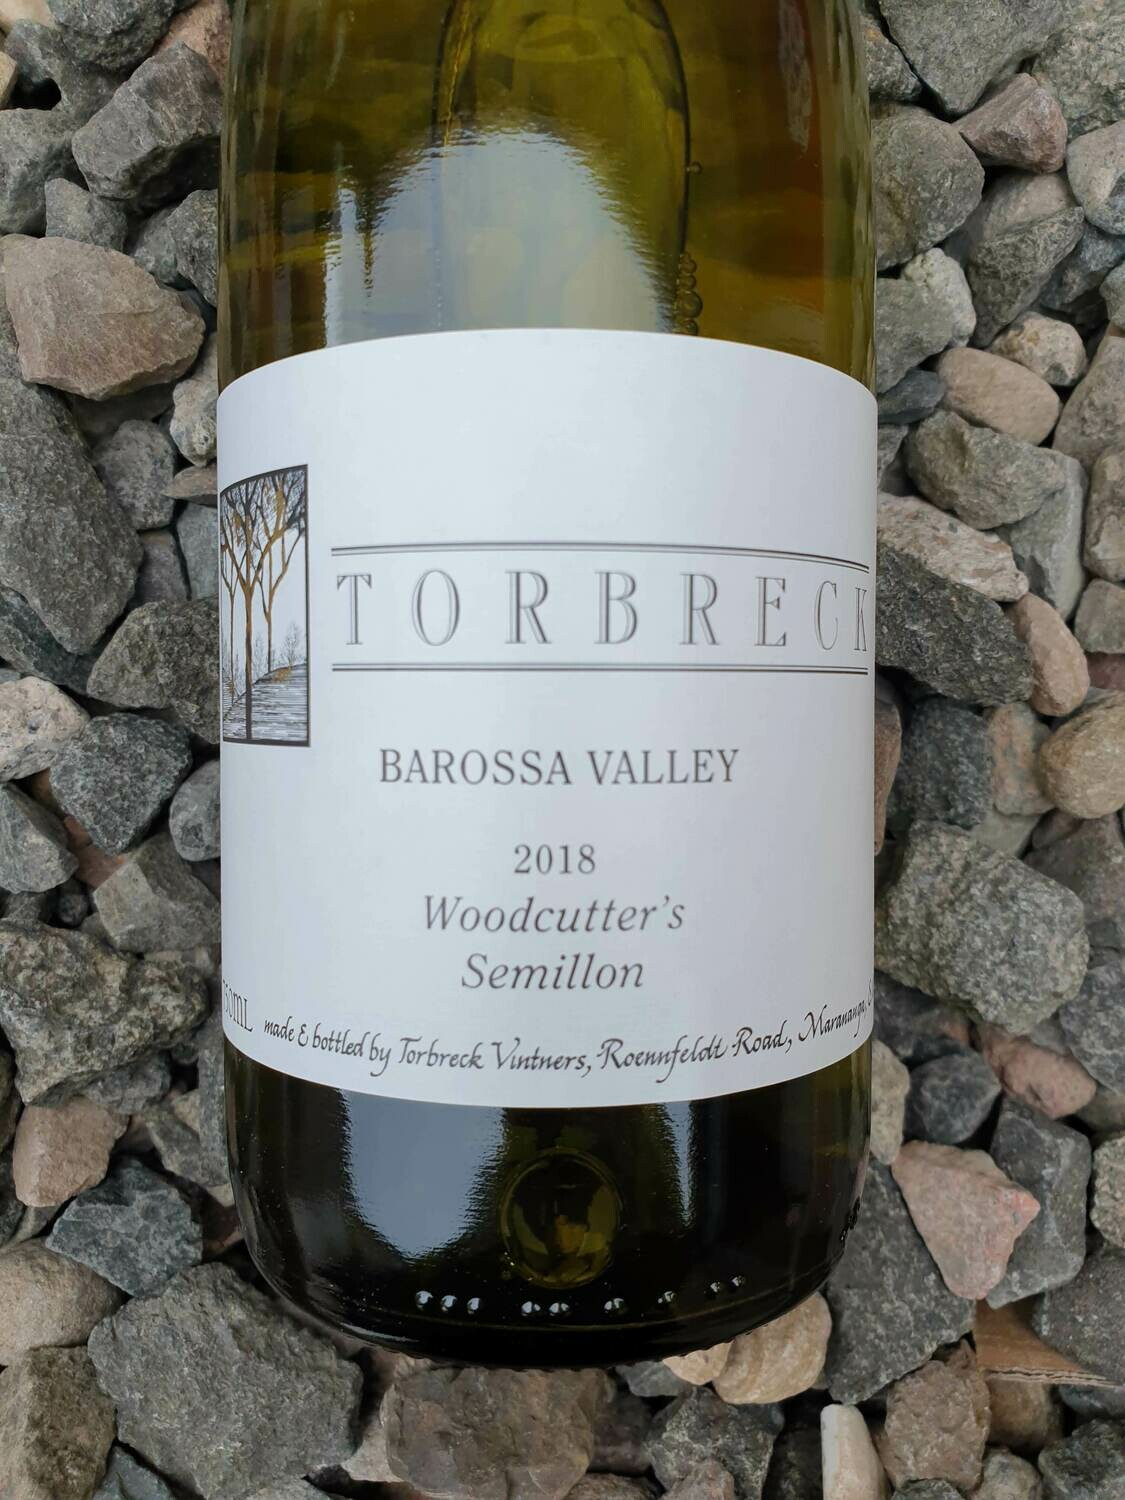 Torbreck Woodcutters Semillon 2018